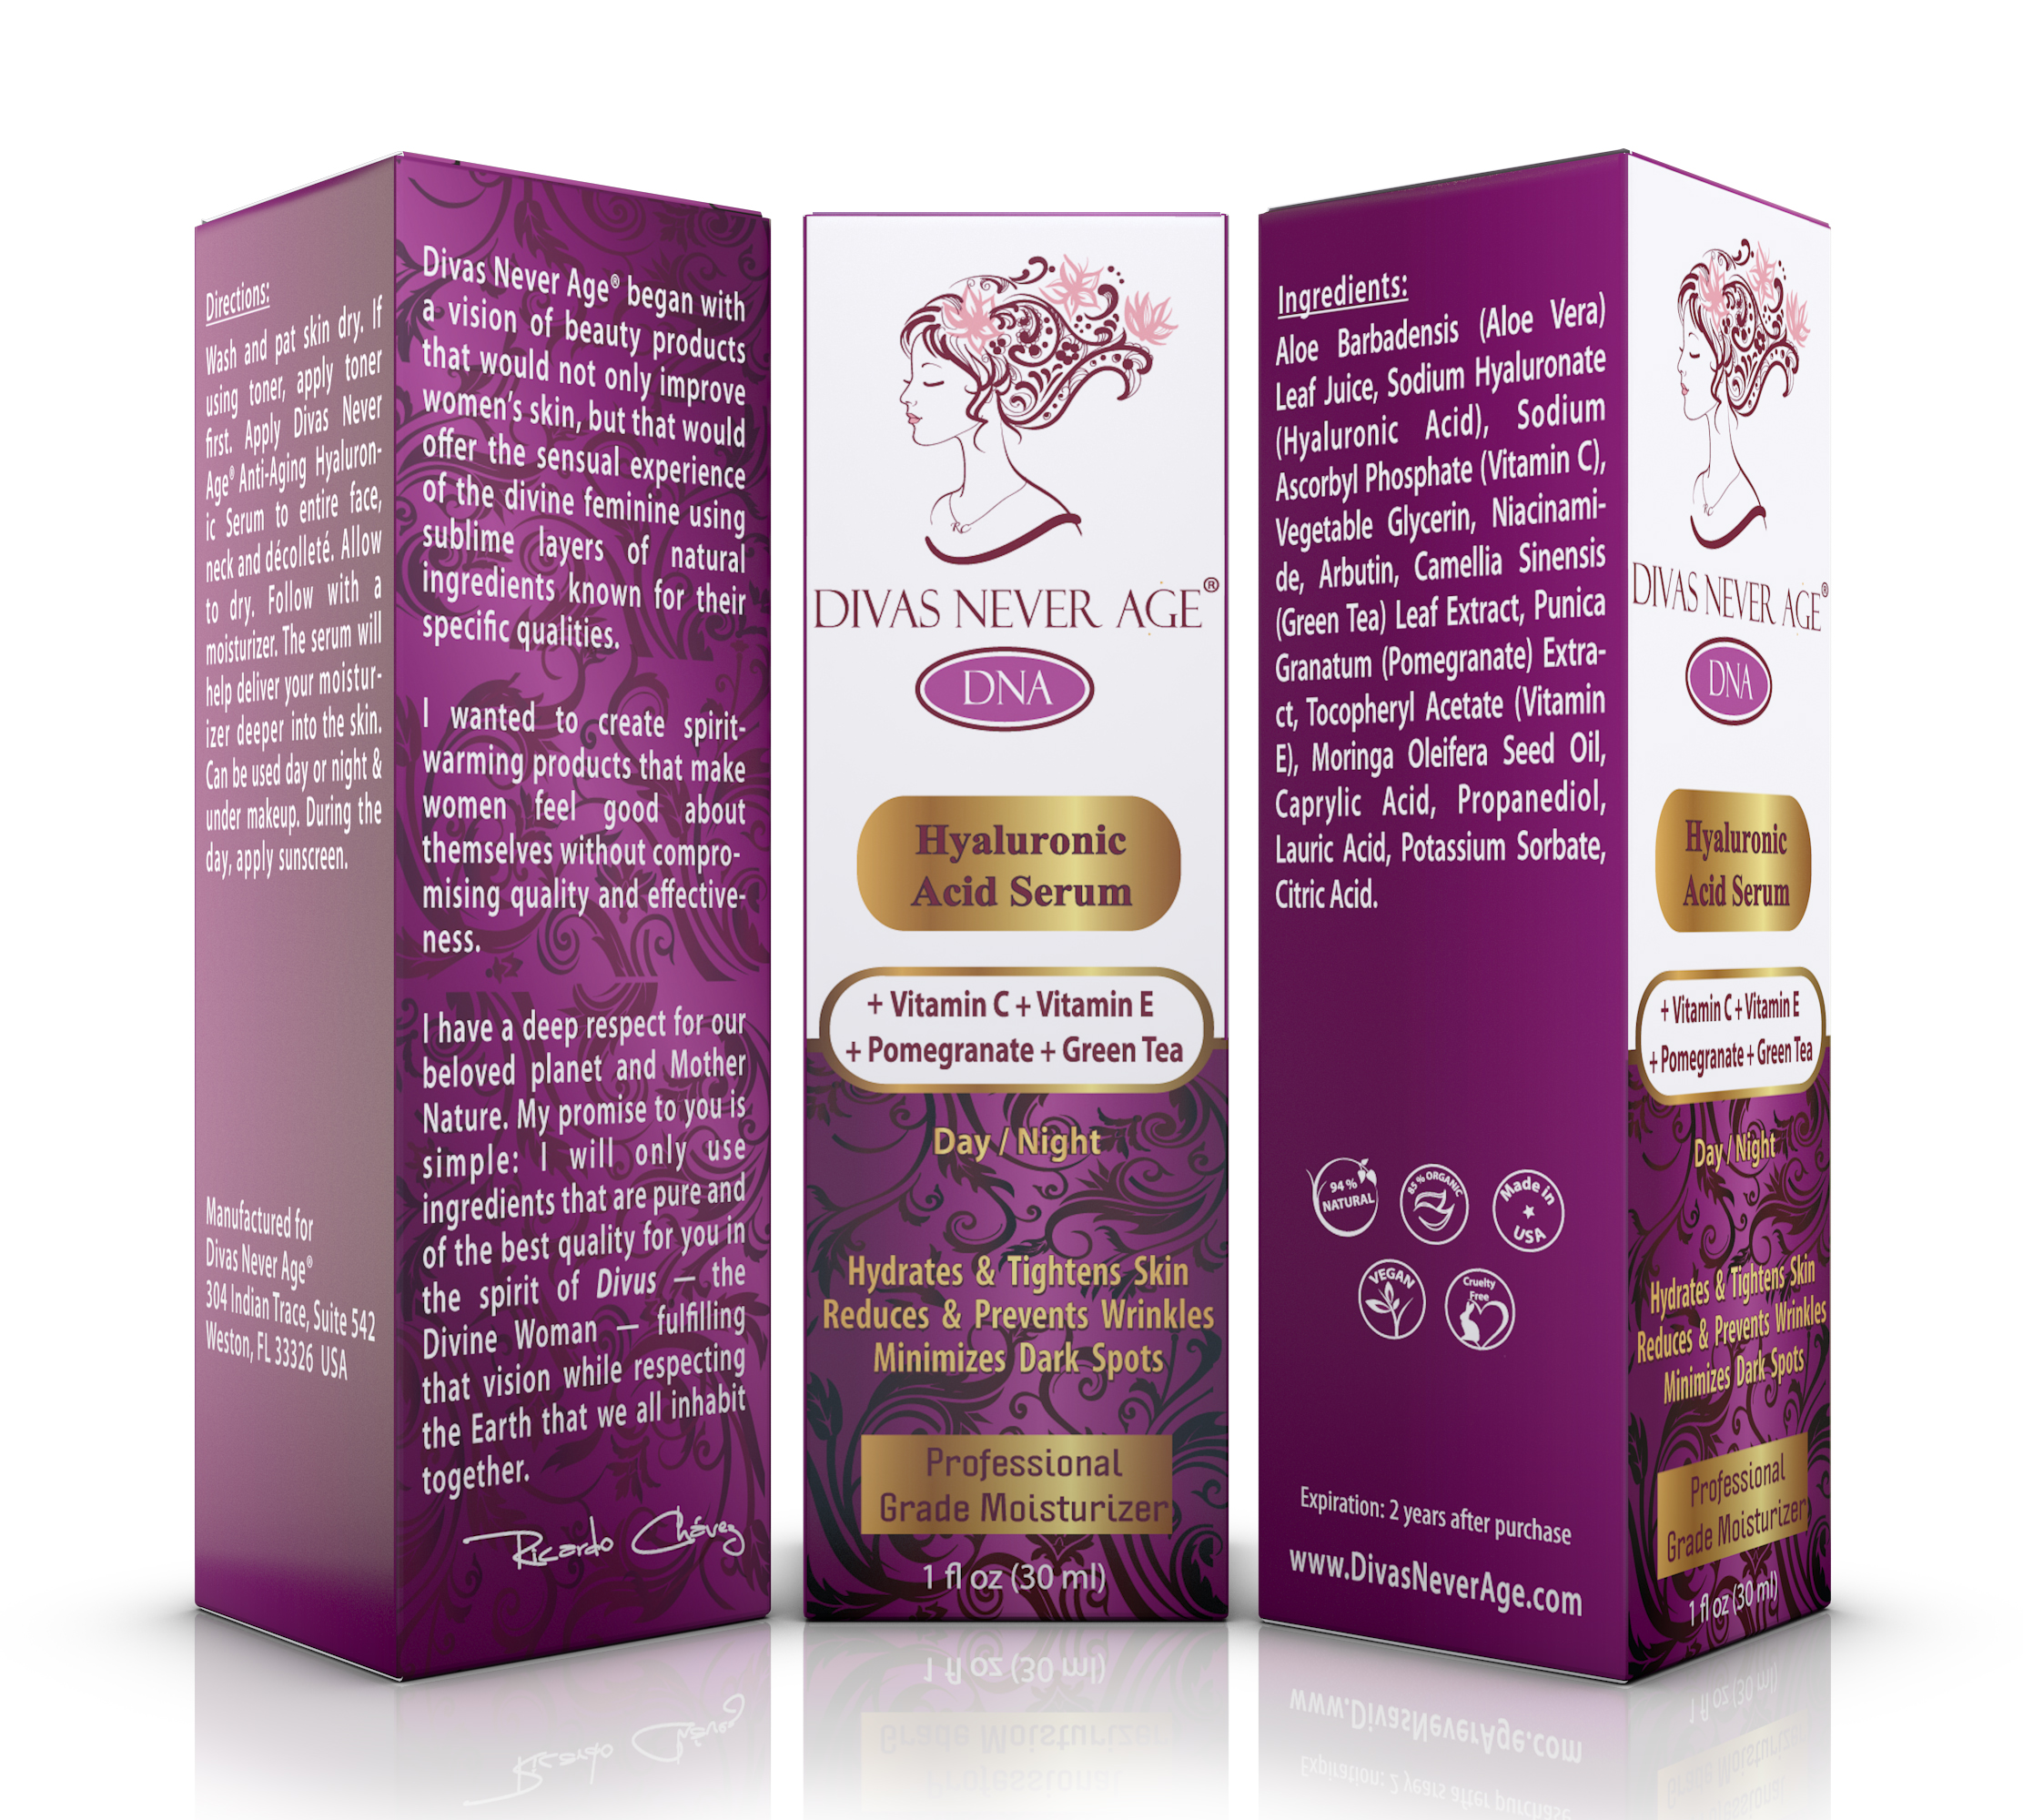 Divas Never Age® - Hyaluronic Acid Serum with Vitamins & Antioxidants